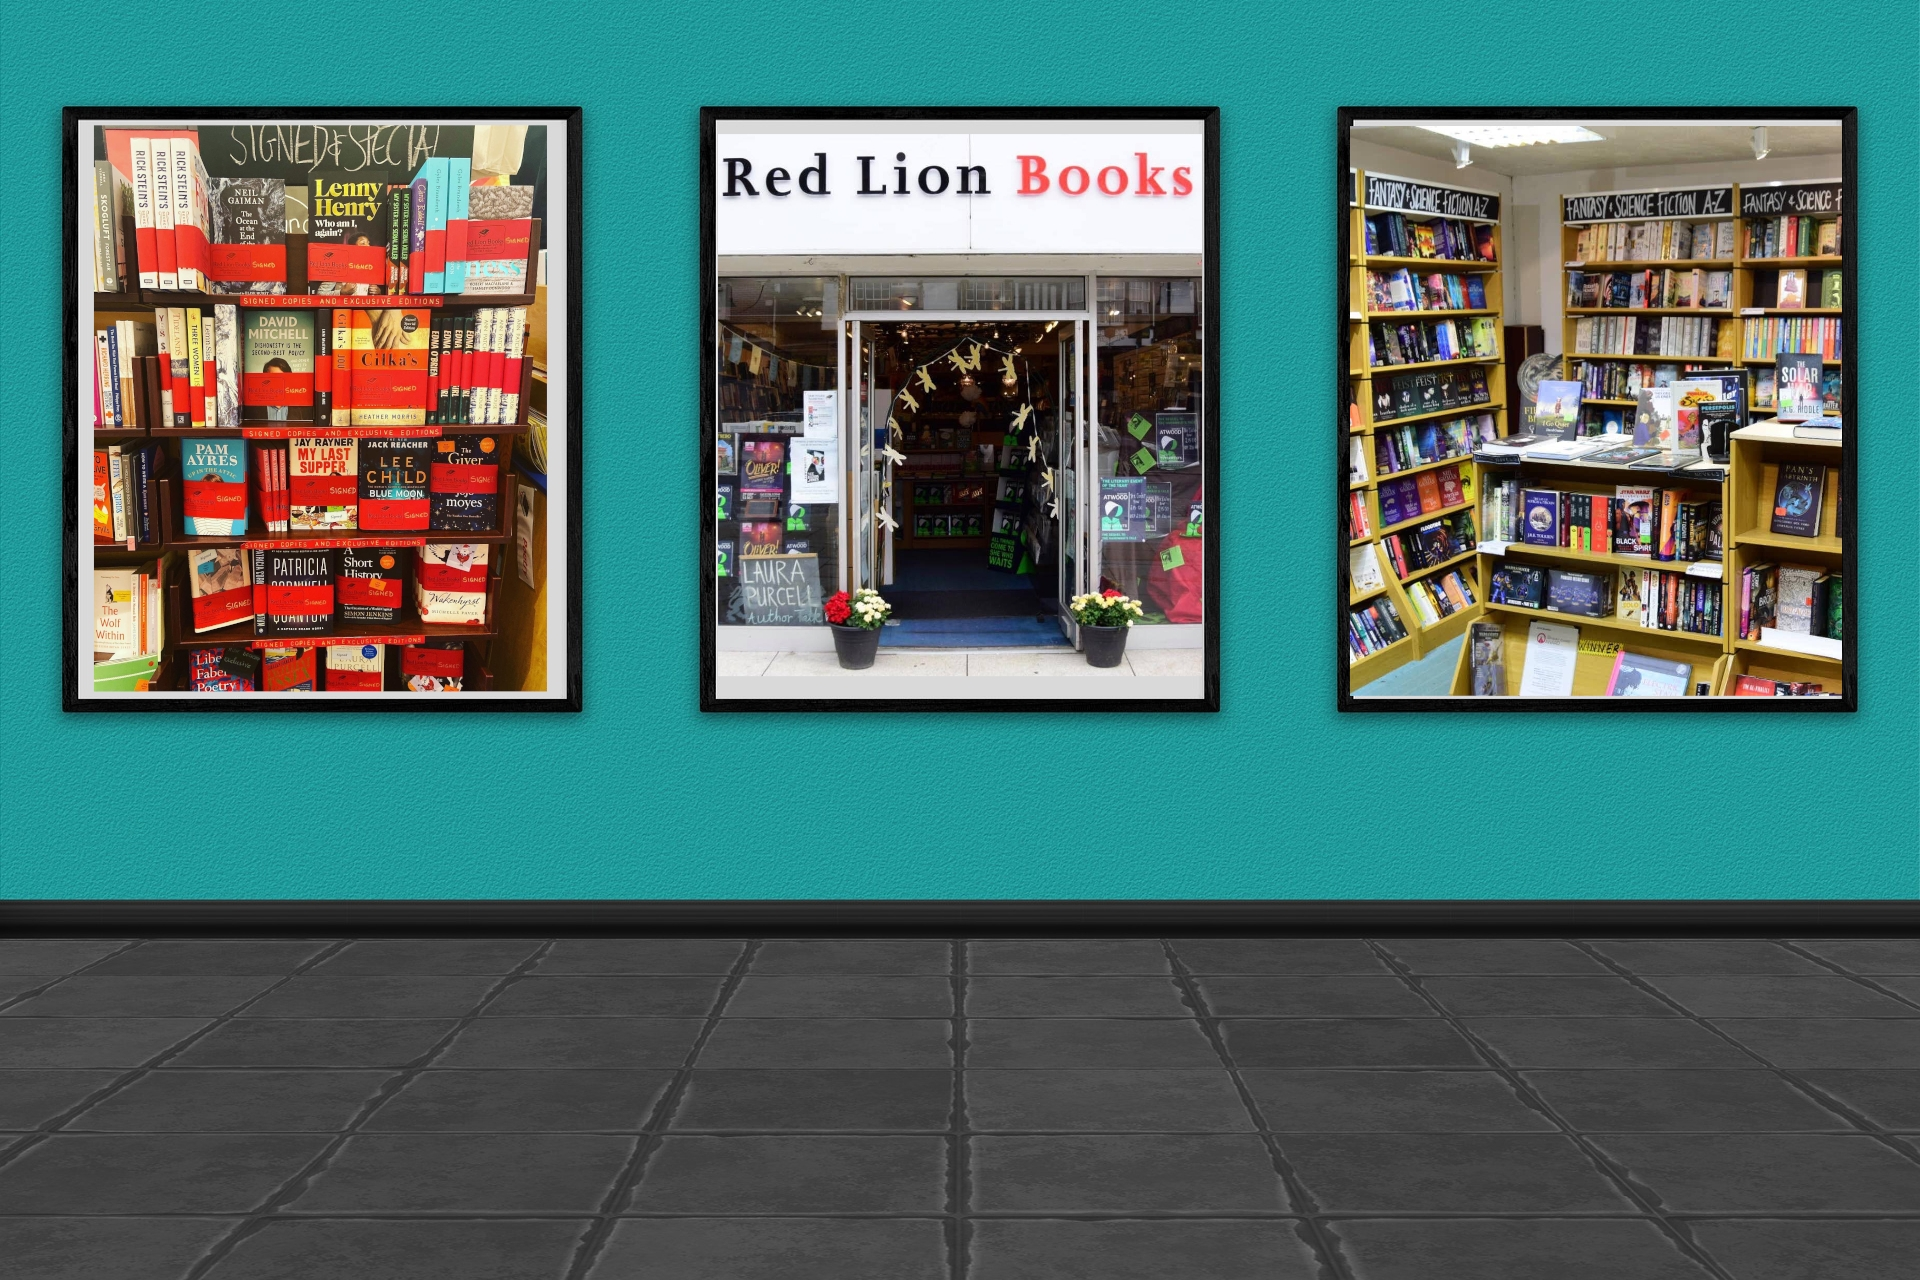 LoveReading Bookshop of the Month: Red Lion Books (Colchester)